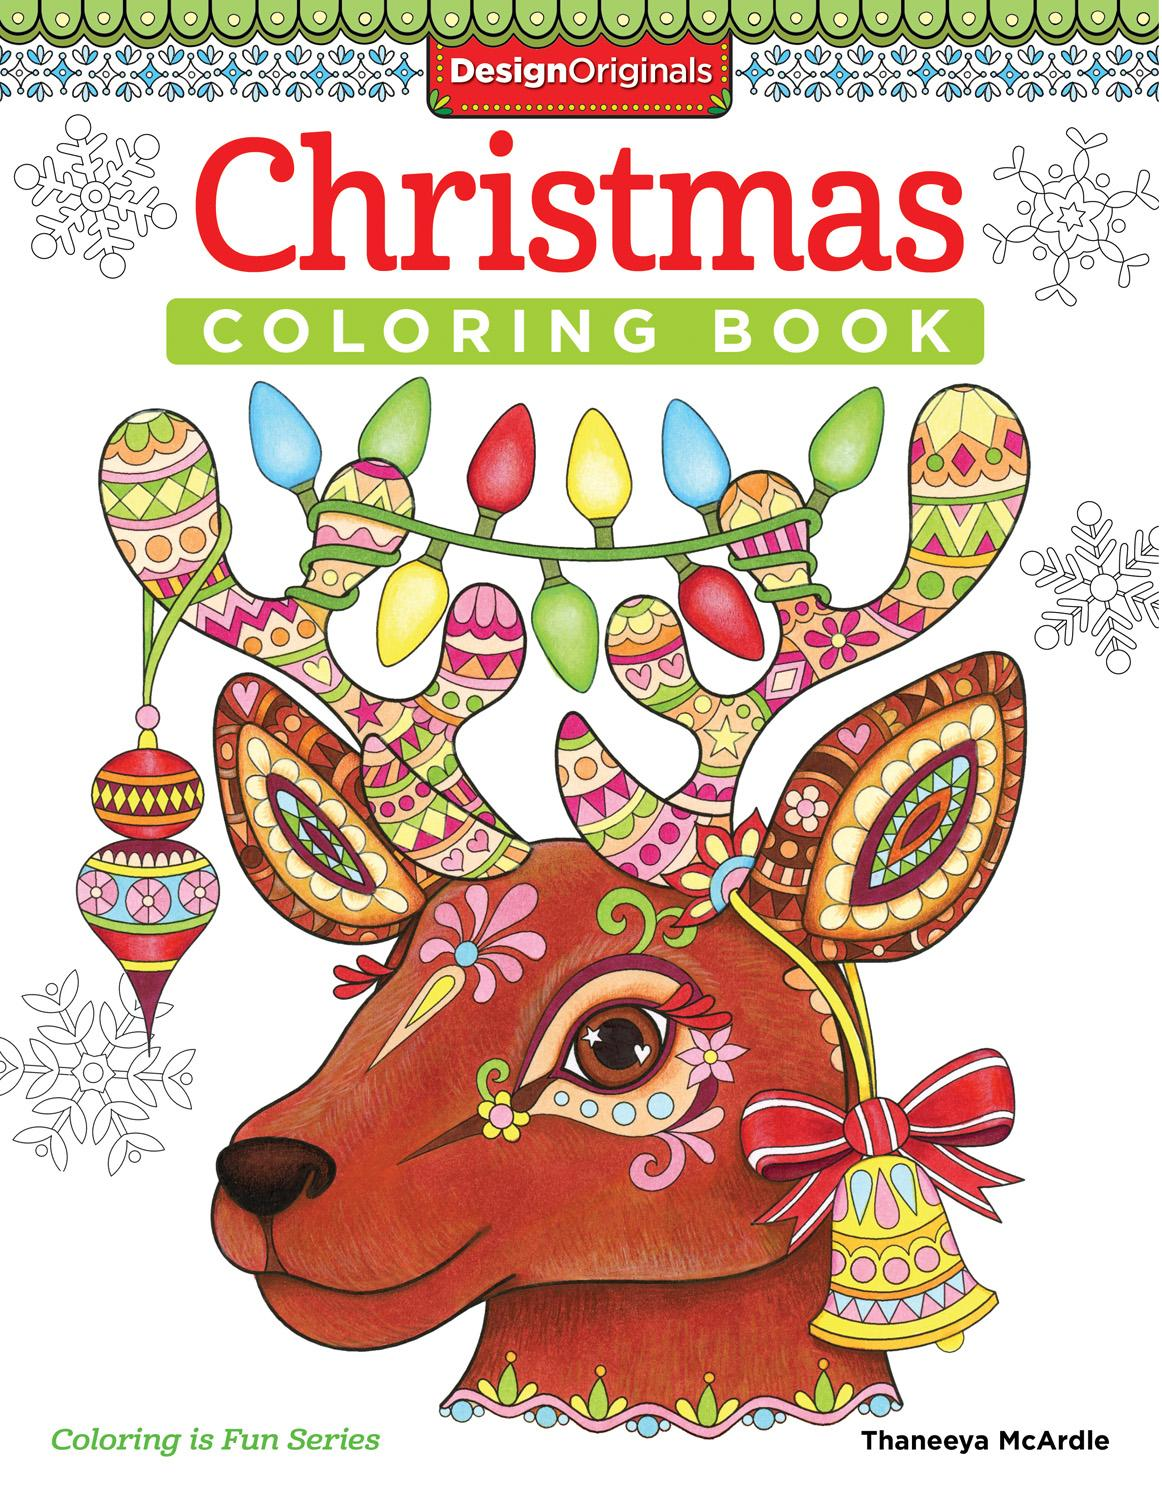 Christmas Coloring Book - Walmart.com